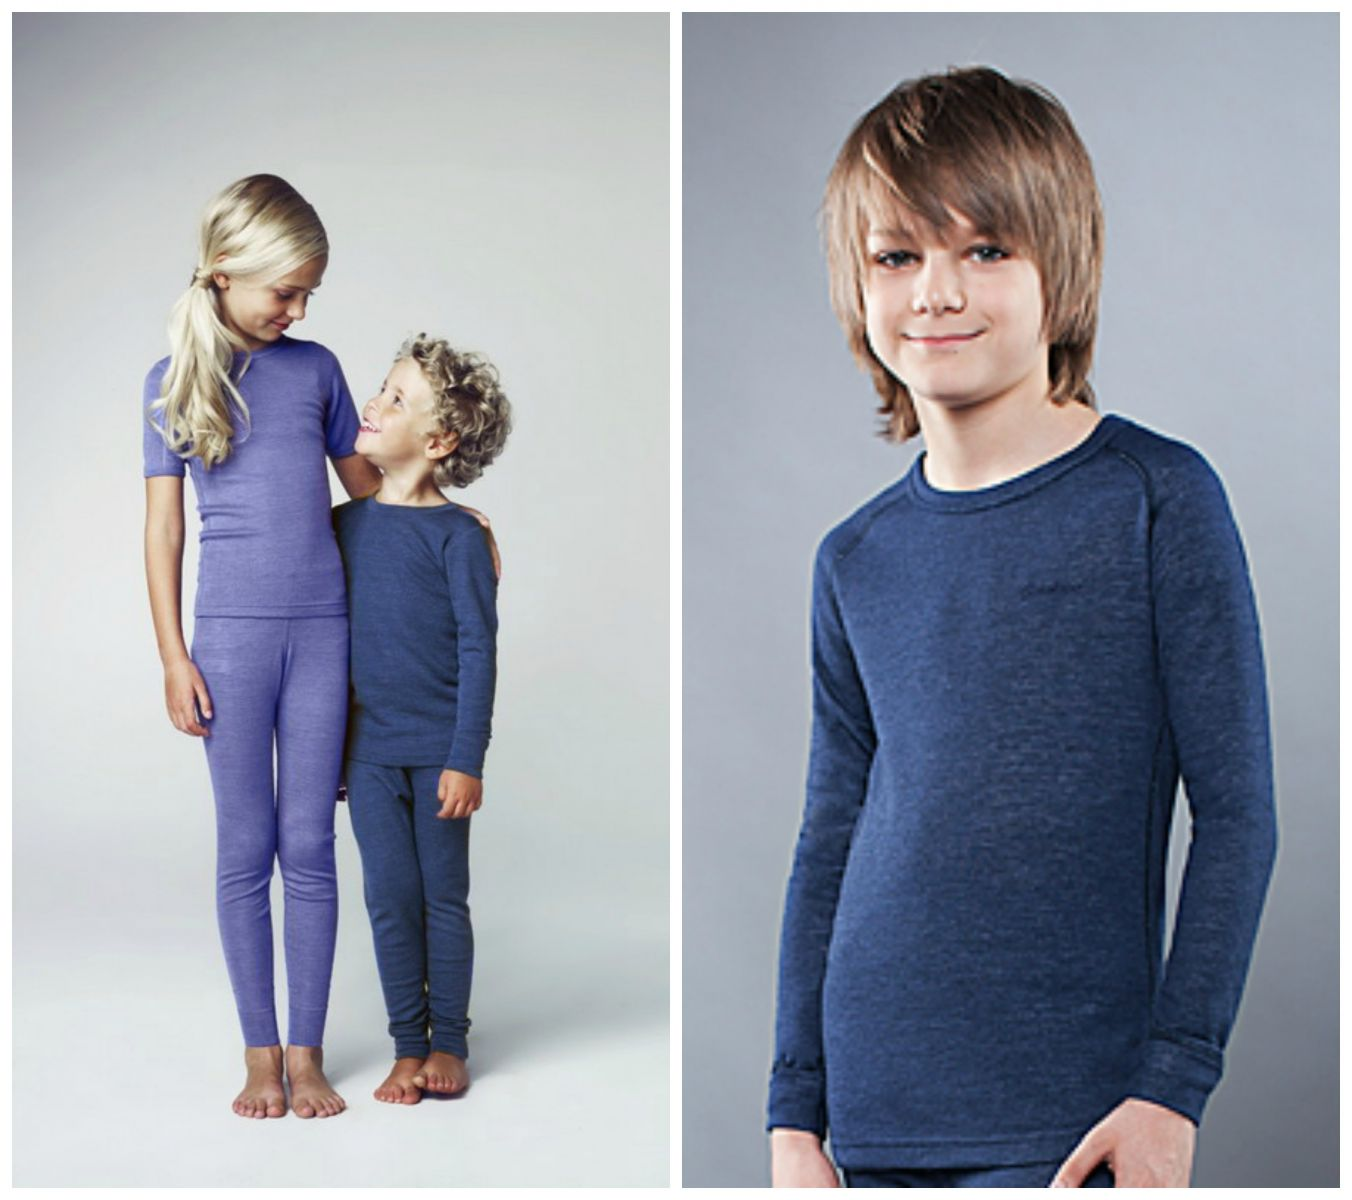 Thermal underwear for children and how to wear it - image №2